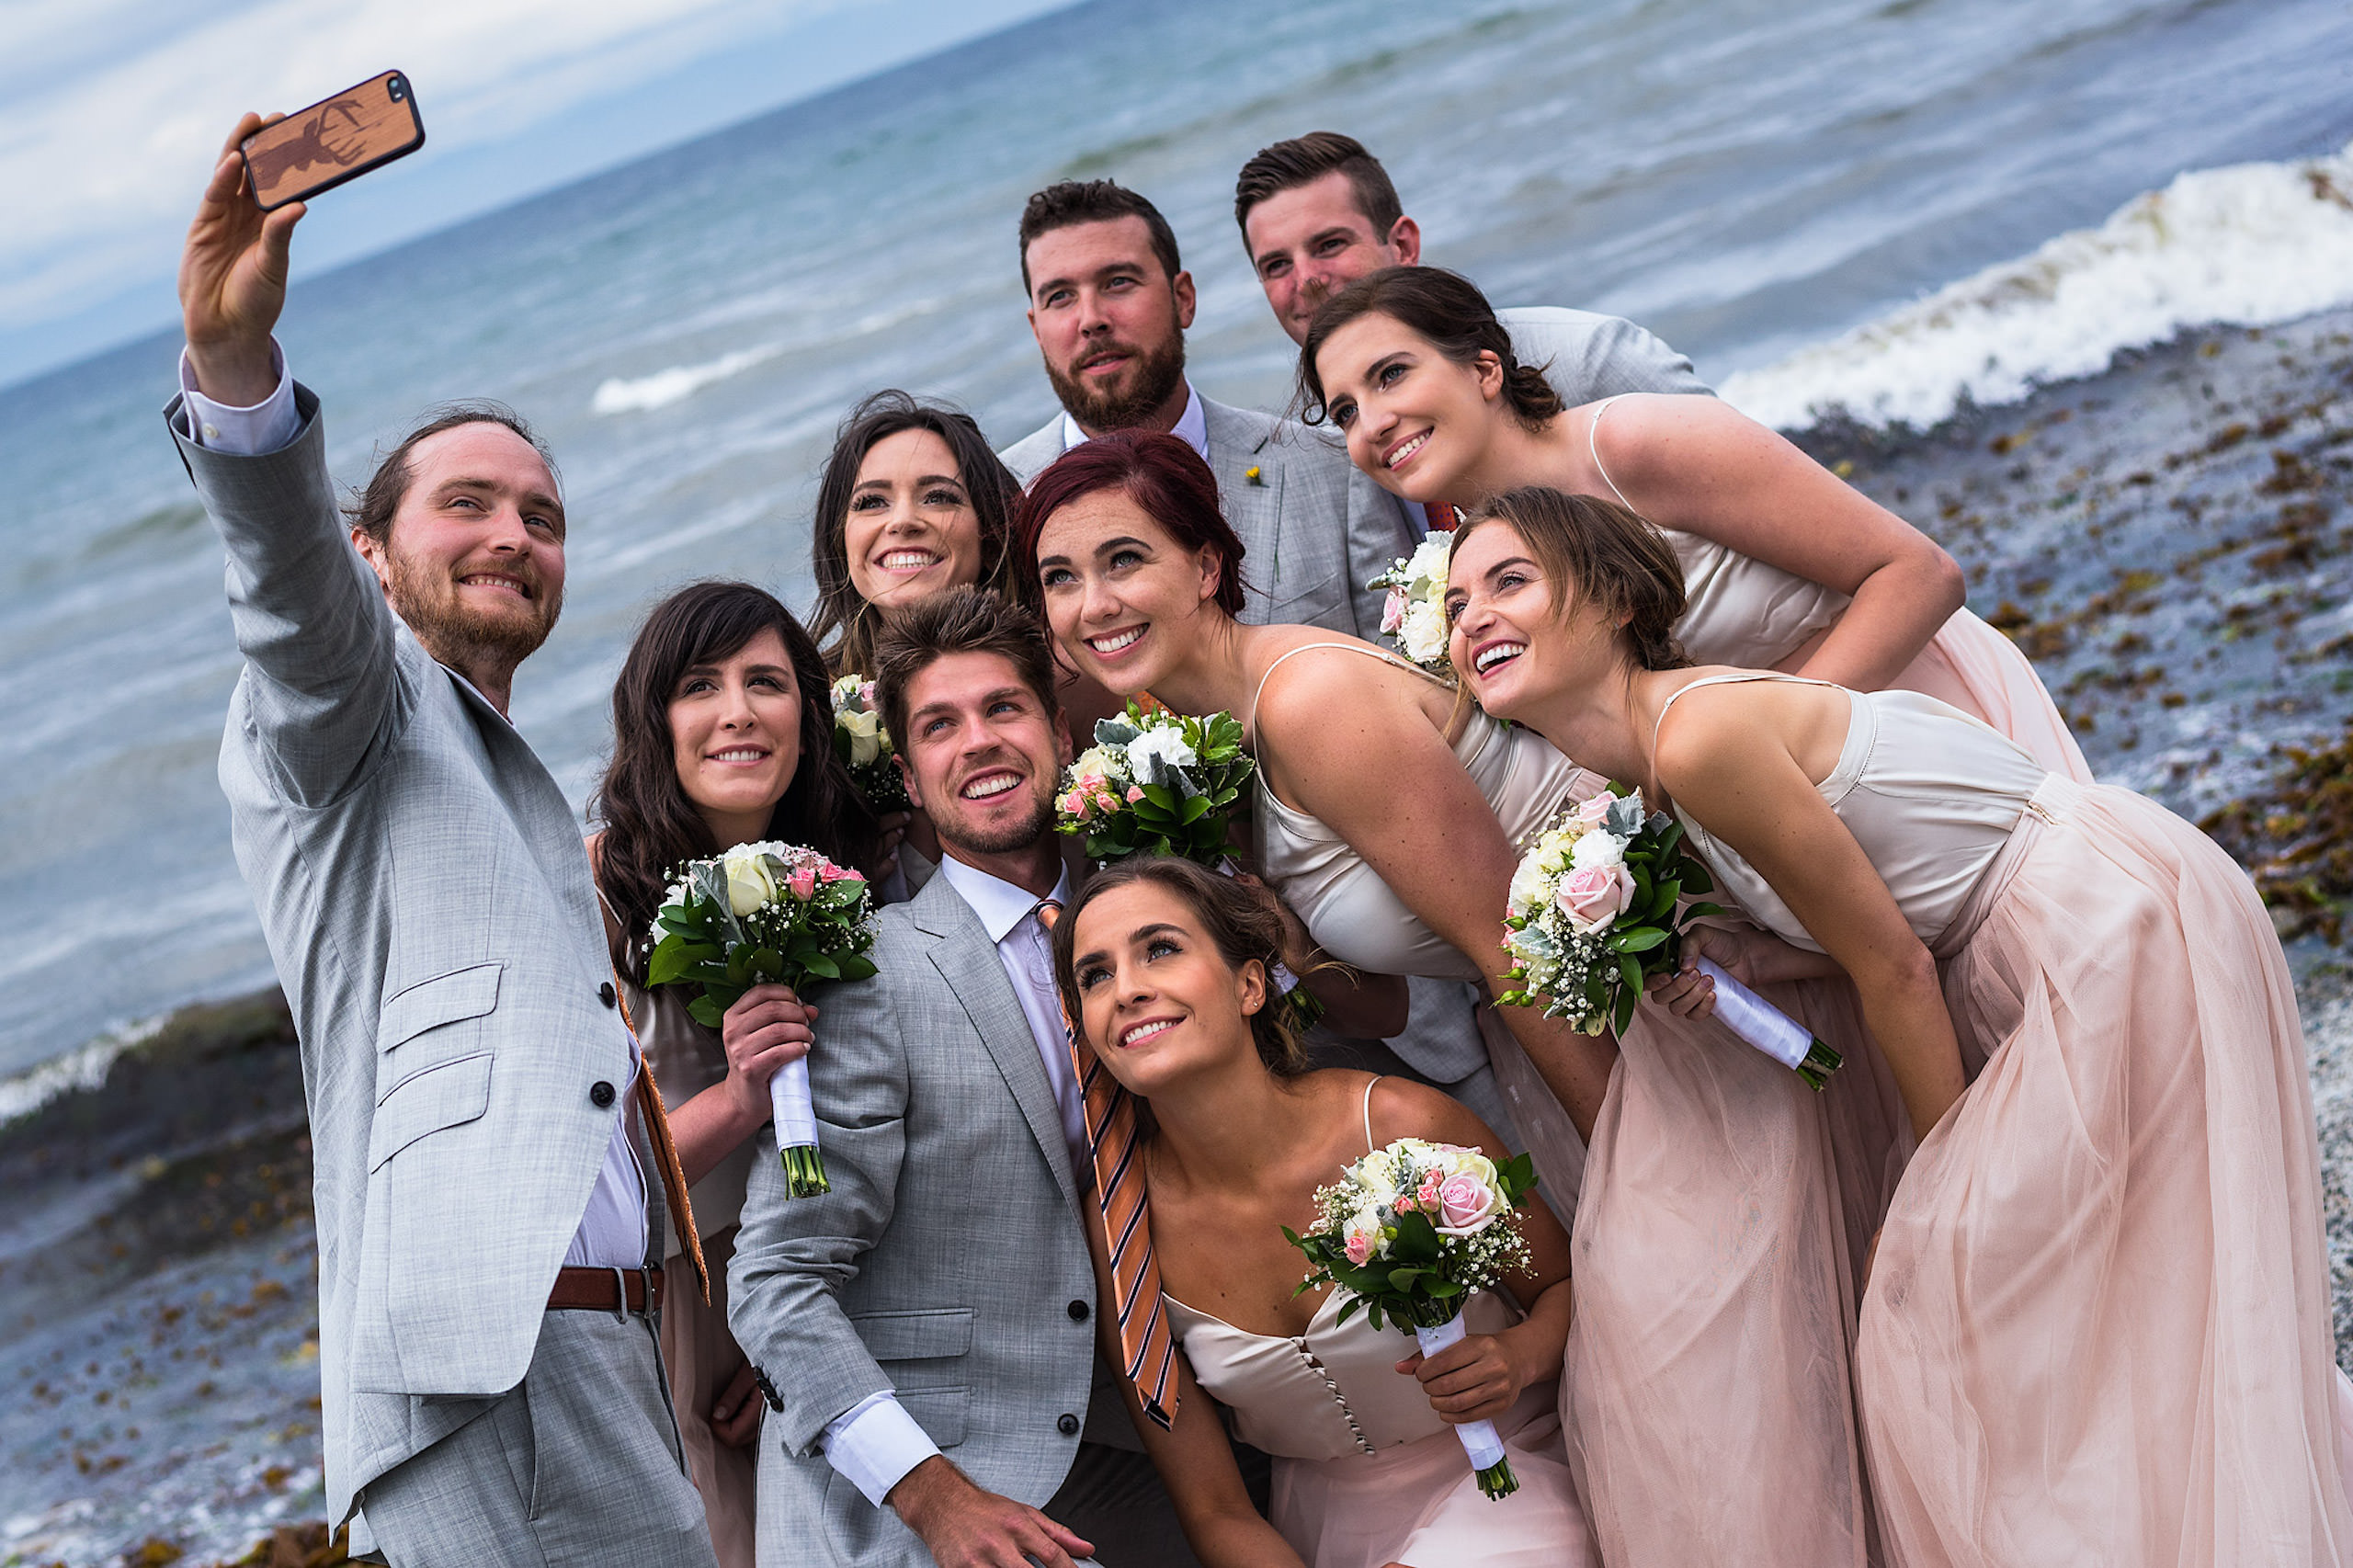 A wedding party posing for a photograph on a beach in BC - Qualicum Wedding Photographer